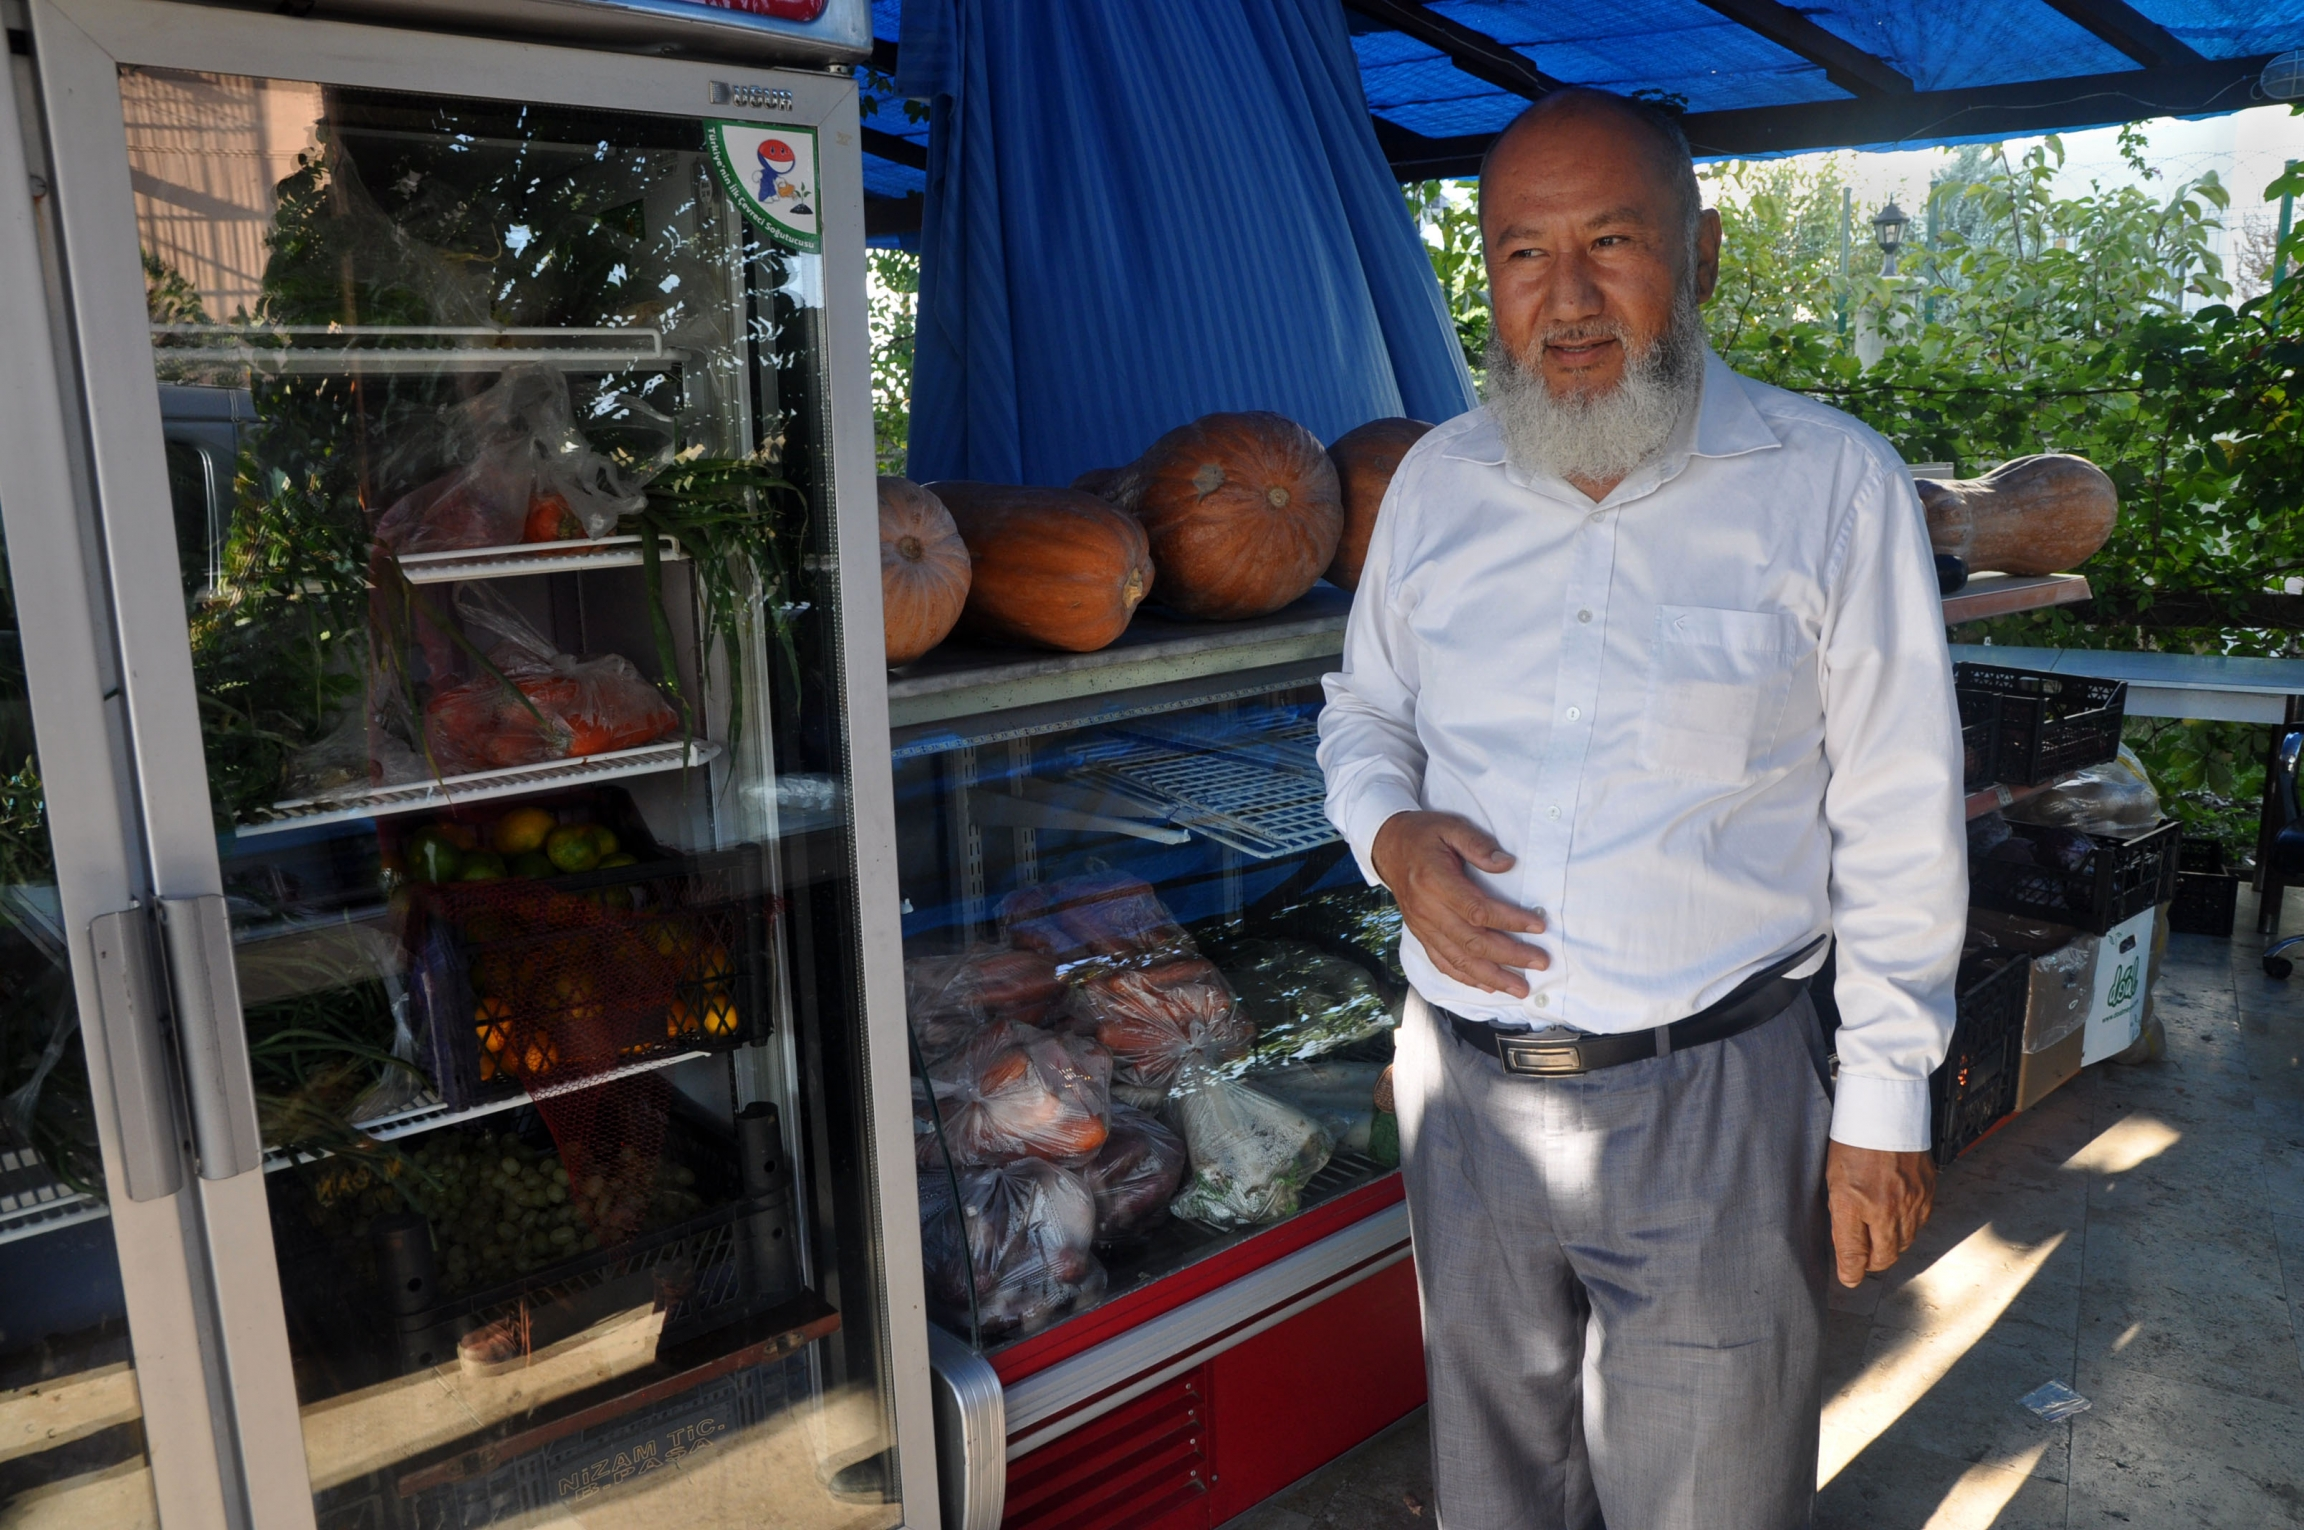 Imran Yakob is raising four of his grandchildren in Istanbul, supporting them with the proceeds of a small roadside shop.